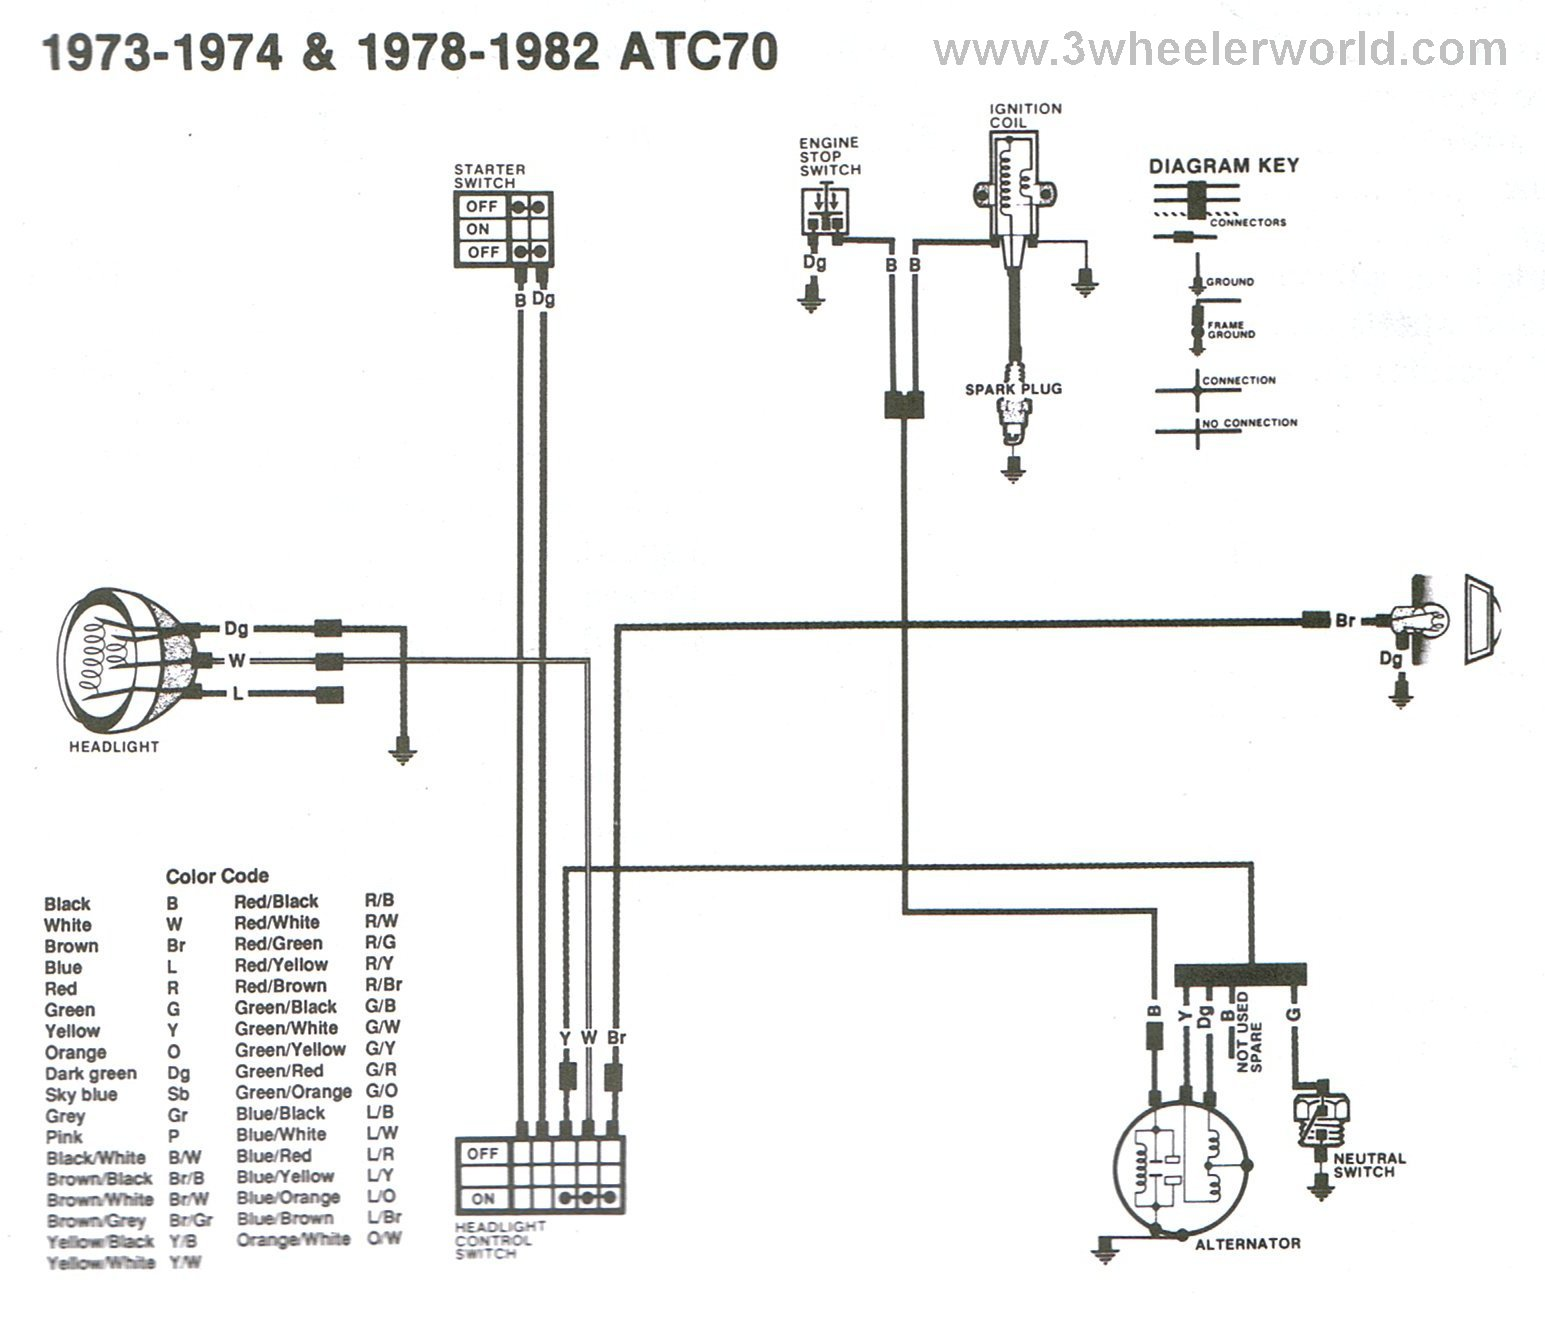 ATC70x73Thru82 3 wheeler world tech help honda wiring diagrams 1985 honda atc 110 wiring diagram at virtualis.co